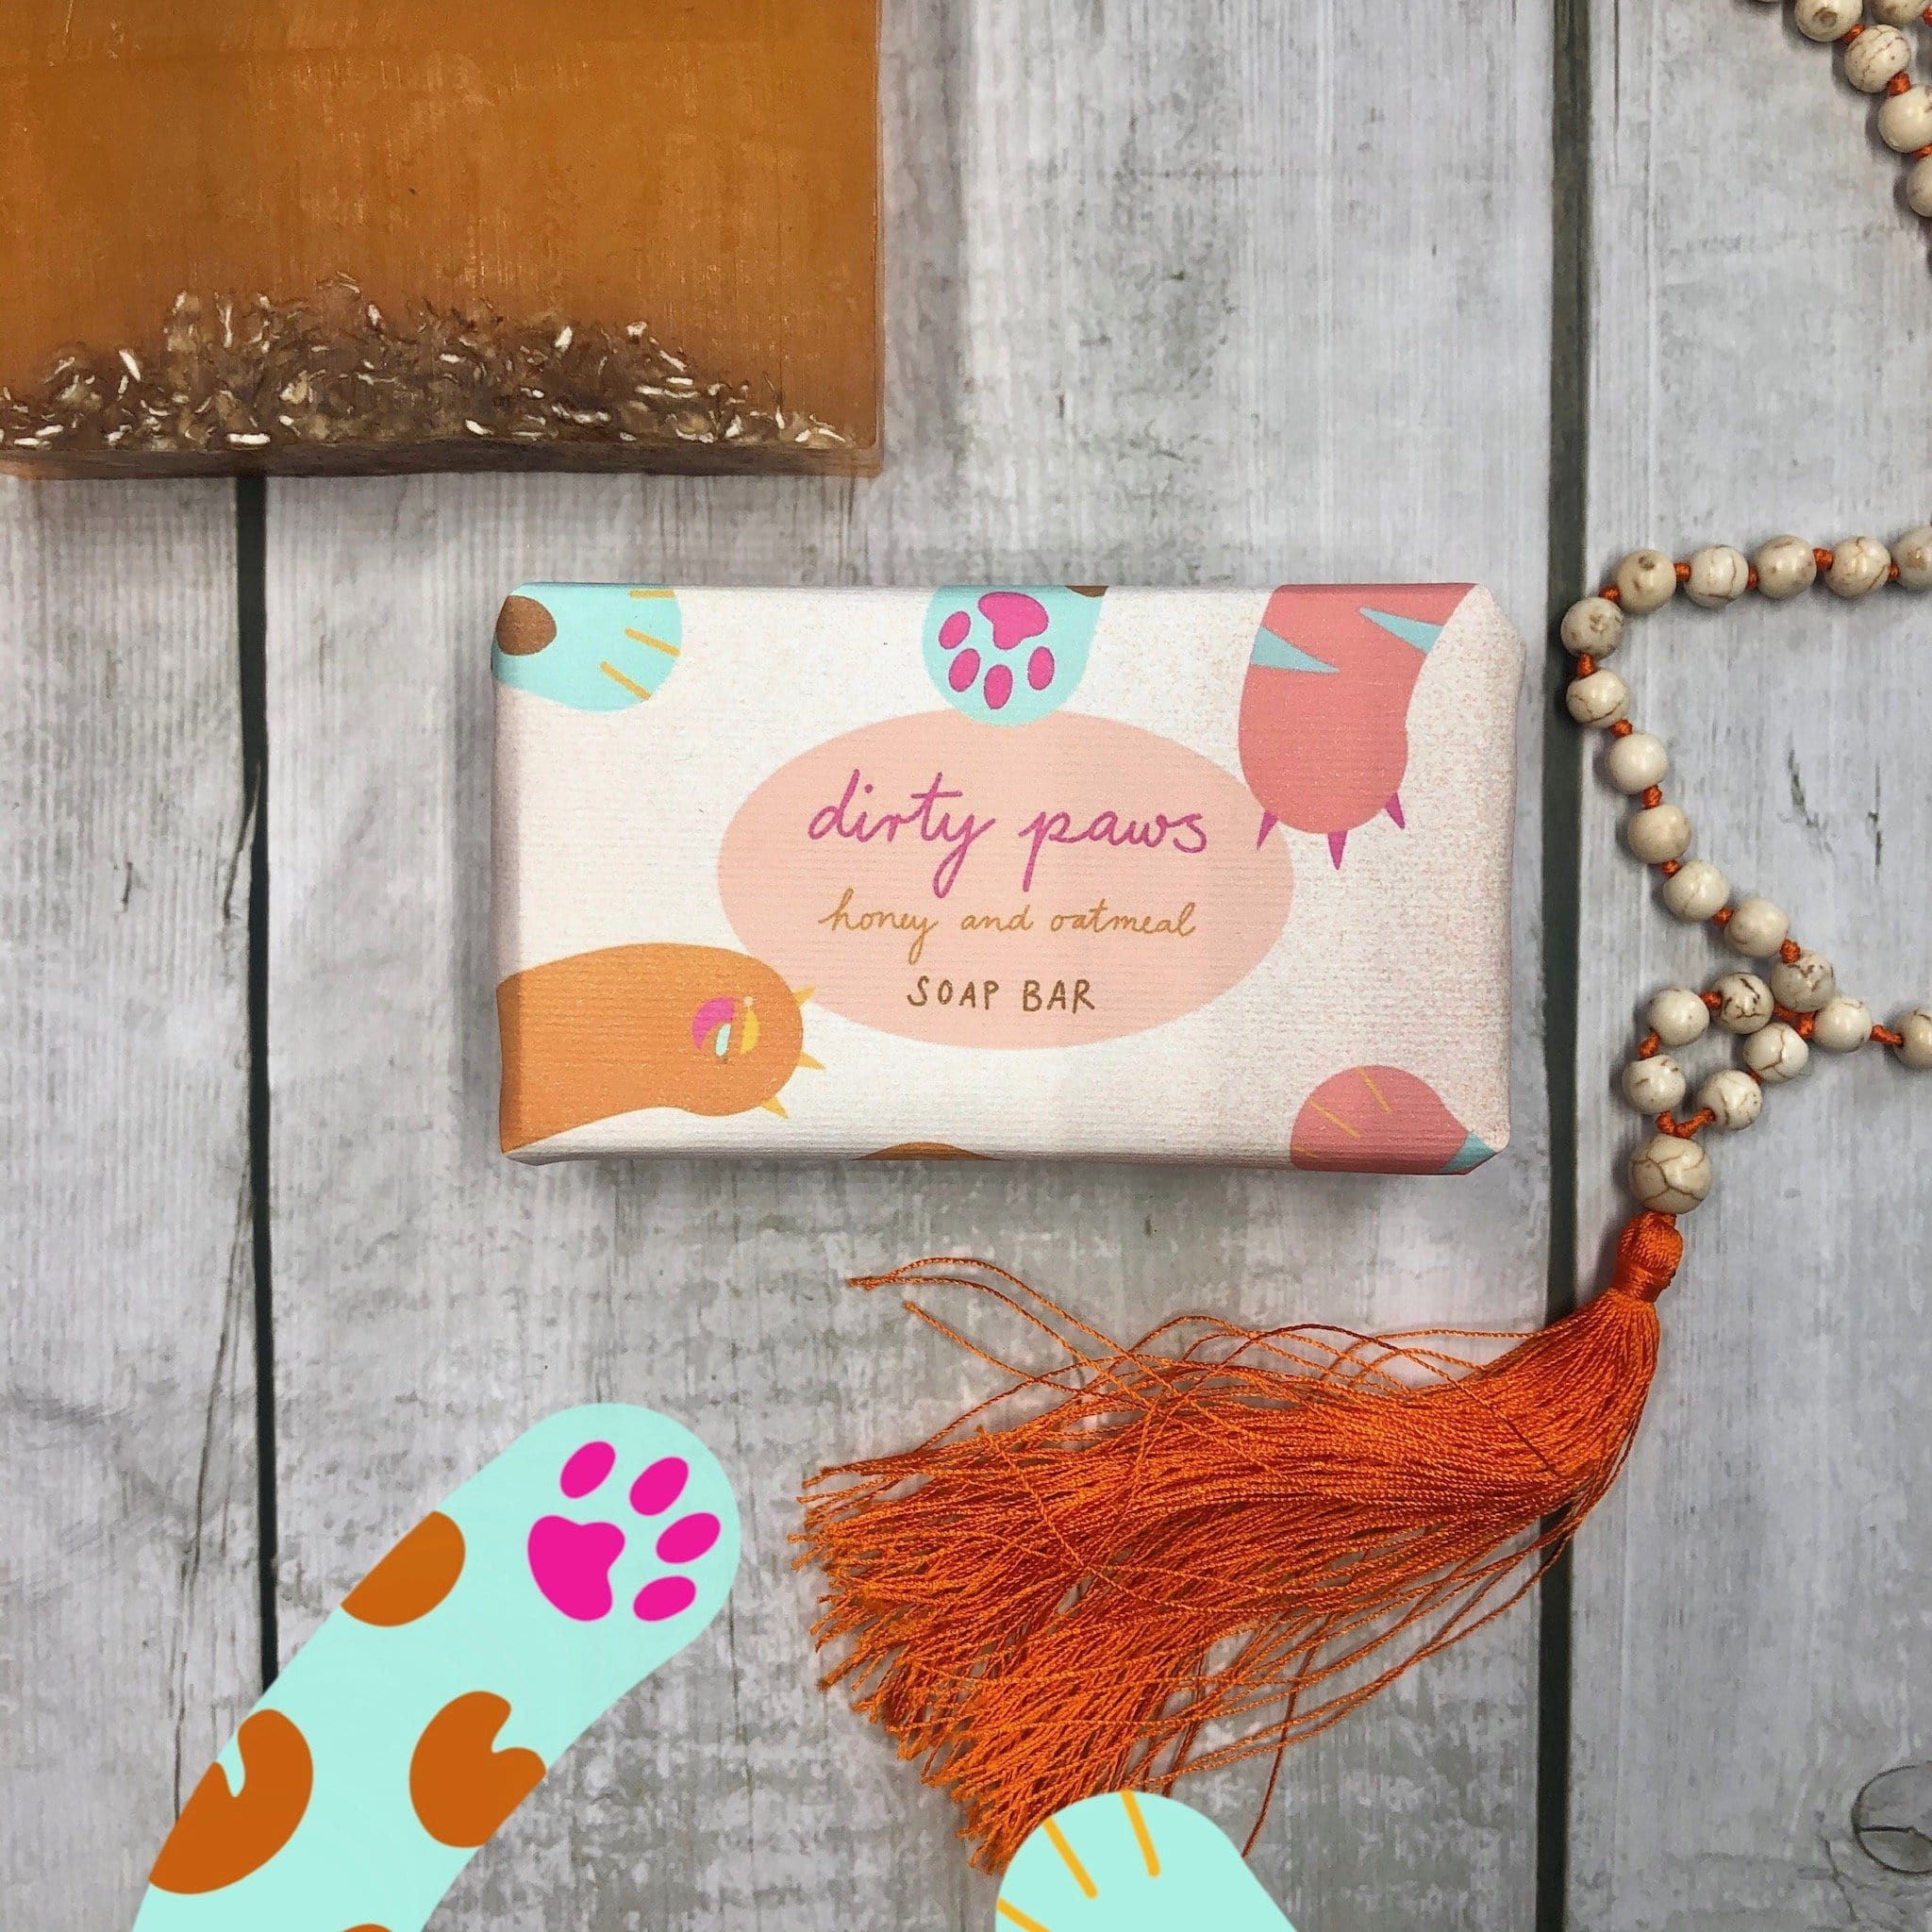 Dirty Paws Honey & Oatmeal Soap Bar